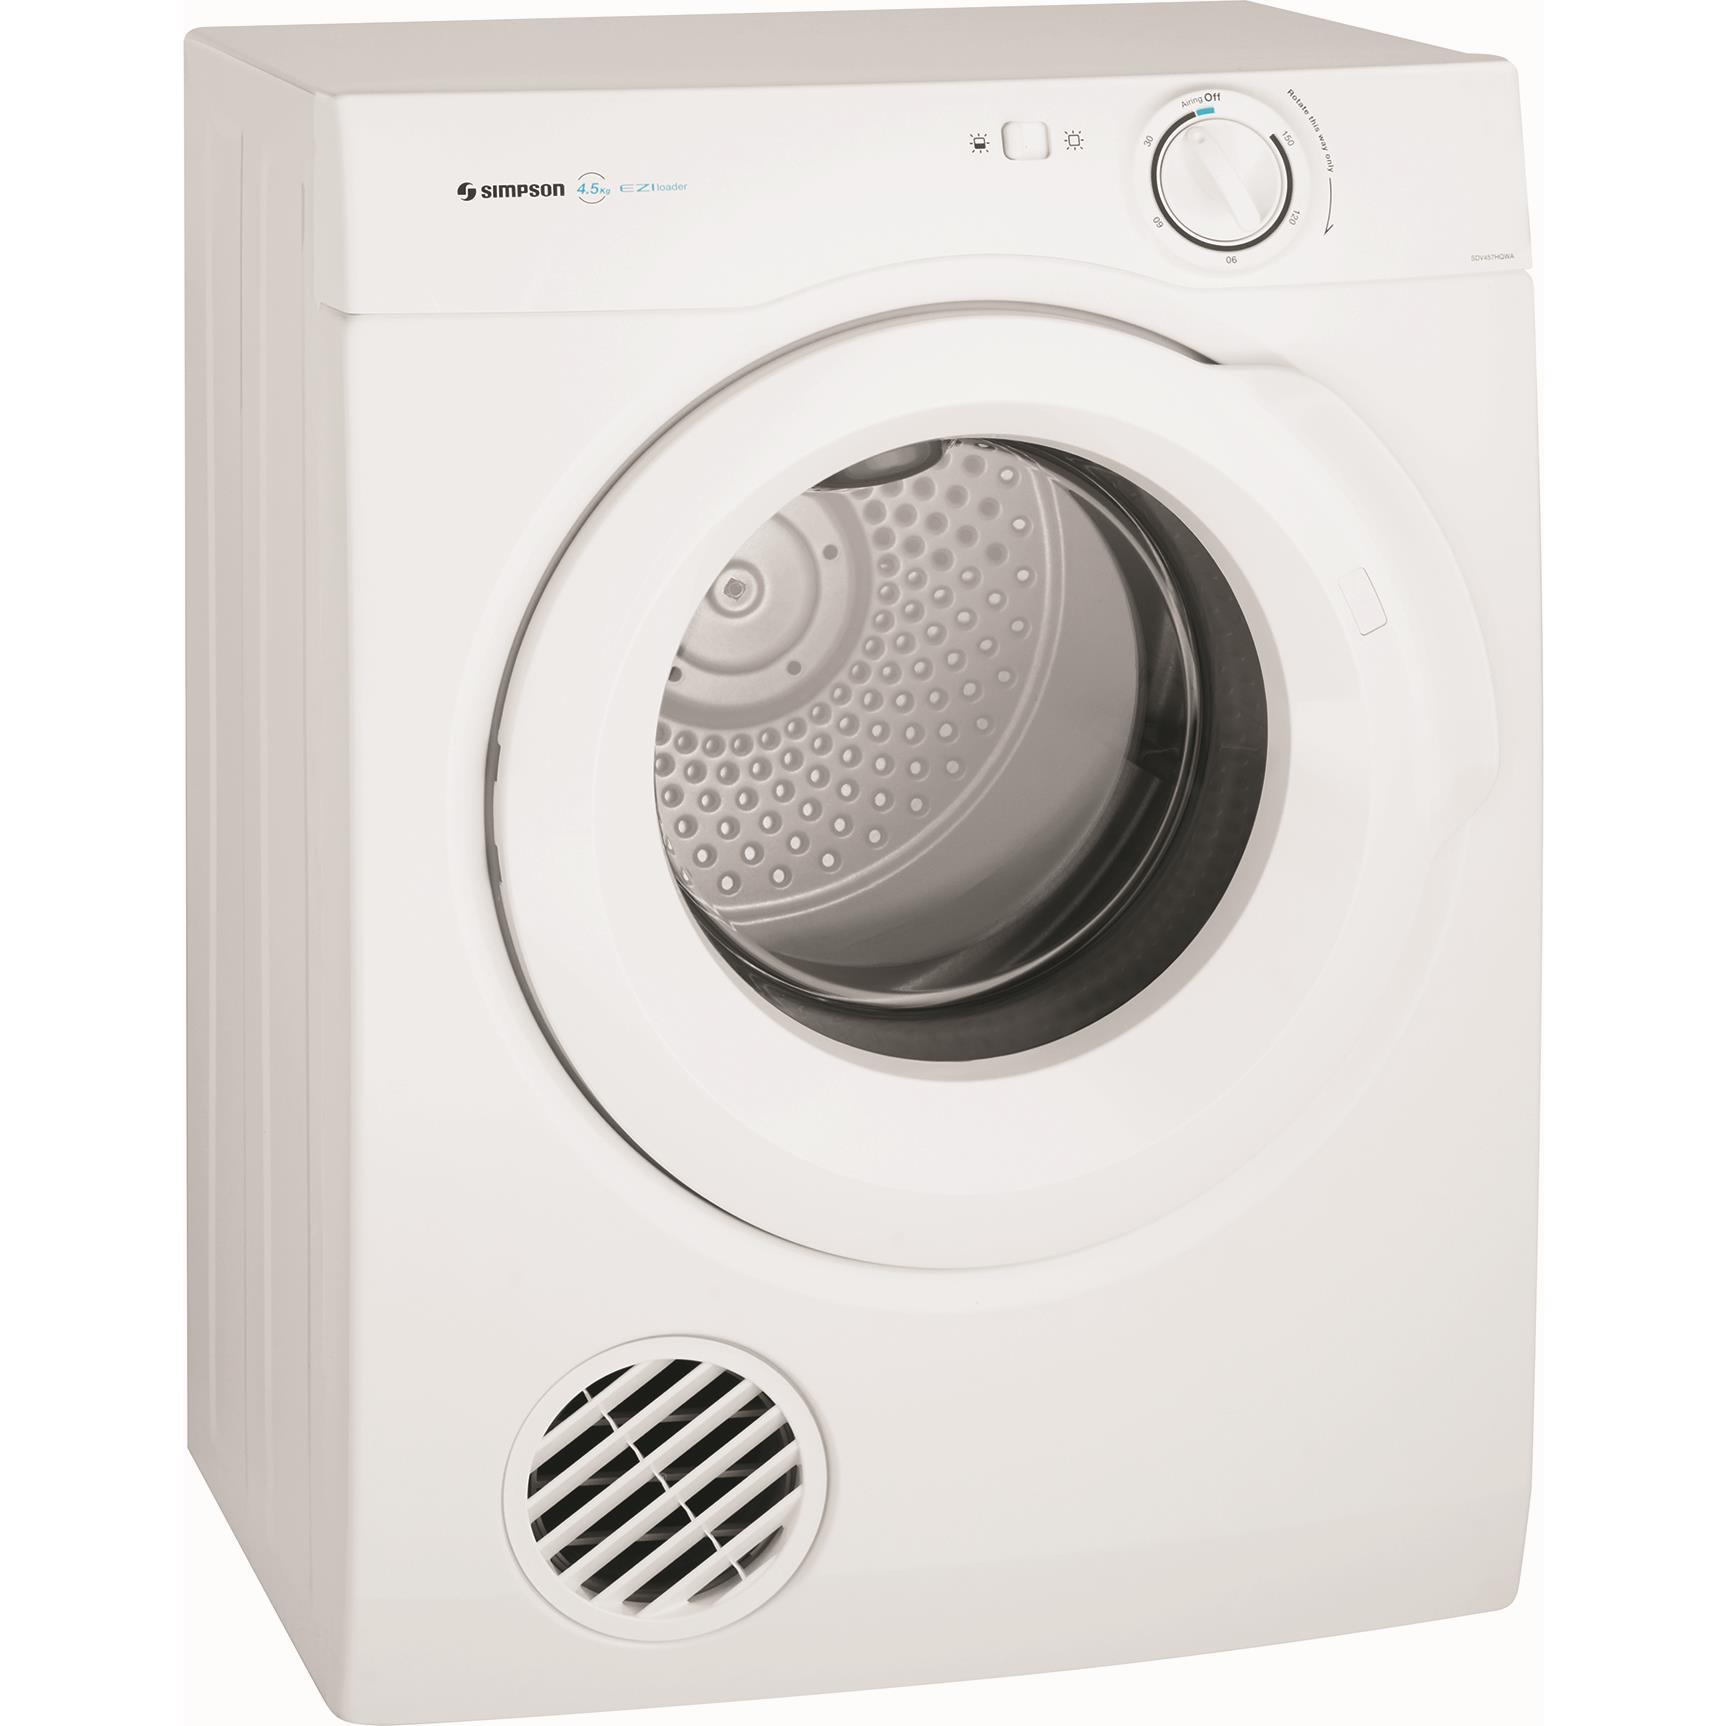 Simpson SDV457HQWA 4.5kg Manual Vented Dryer